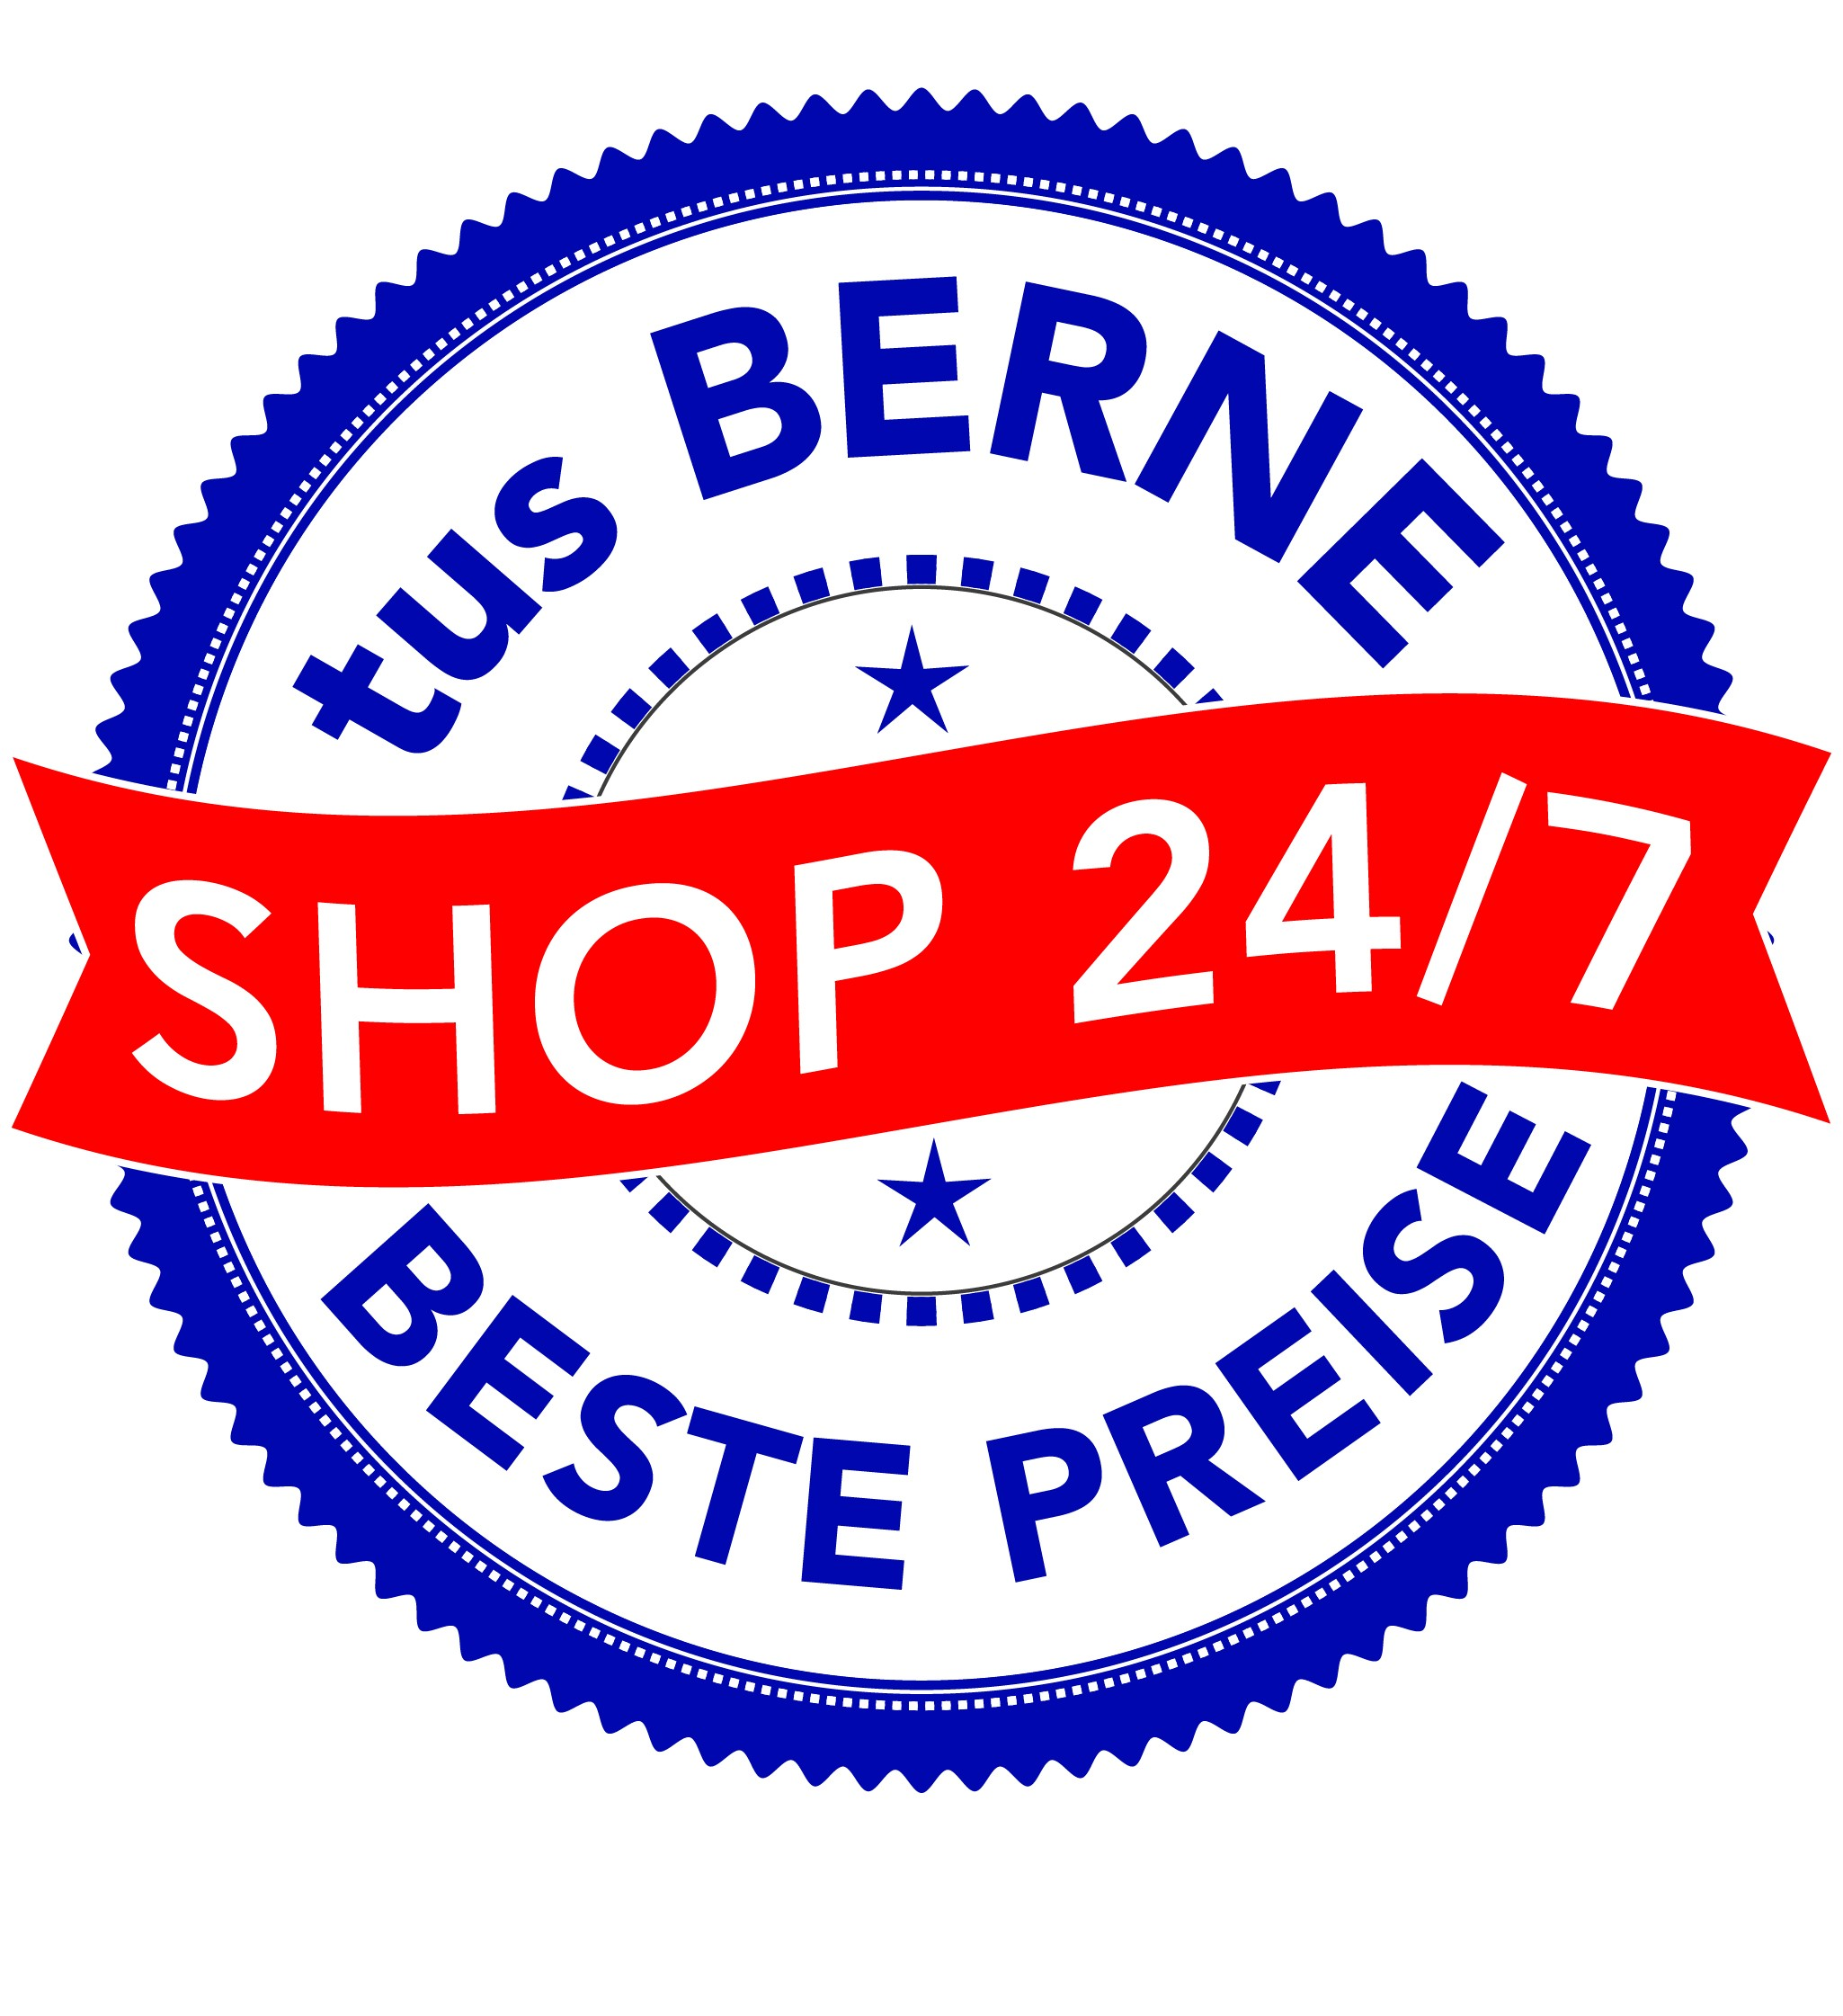 TusBerneShop